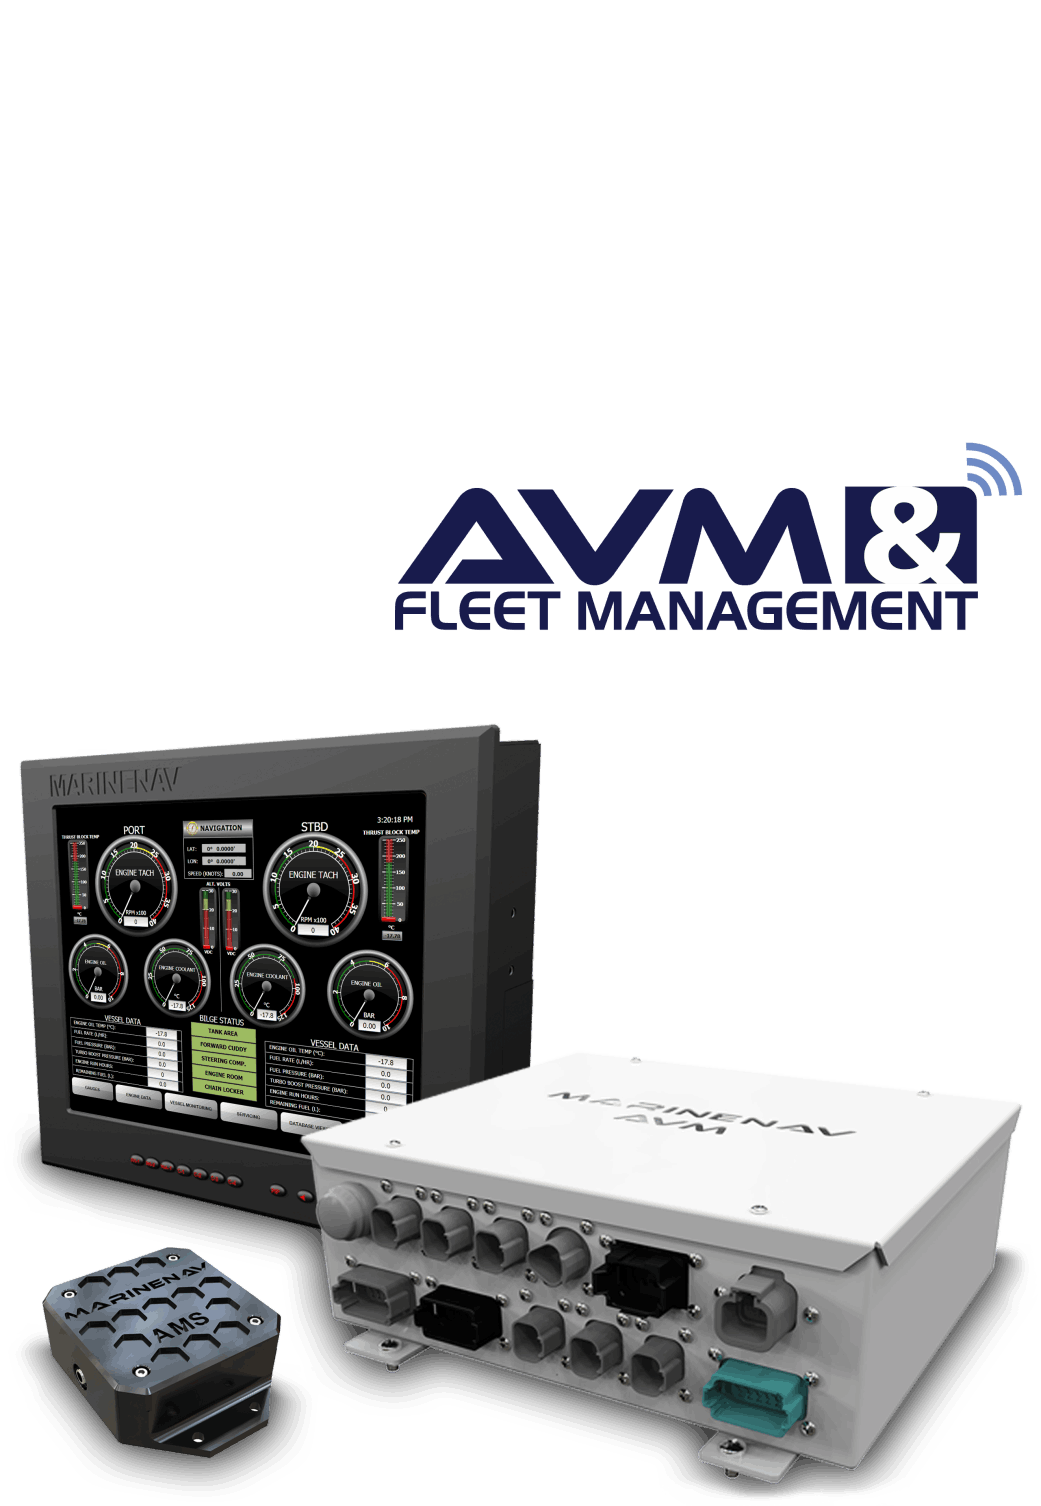 MarineNav Advanced Vessel Monitoring & Fleet Management